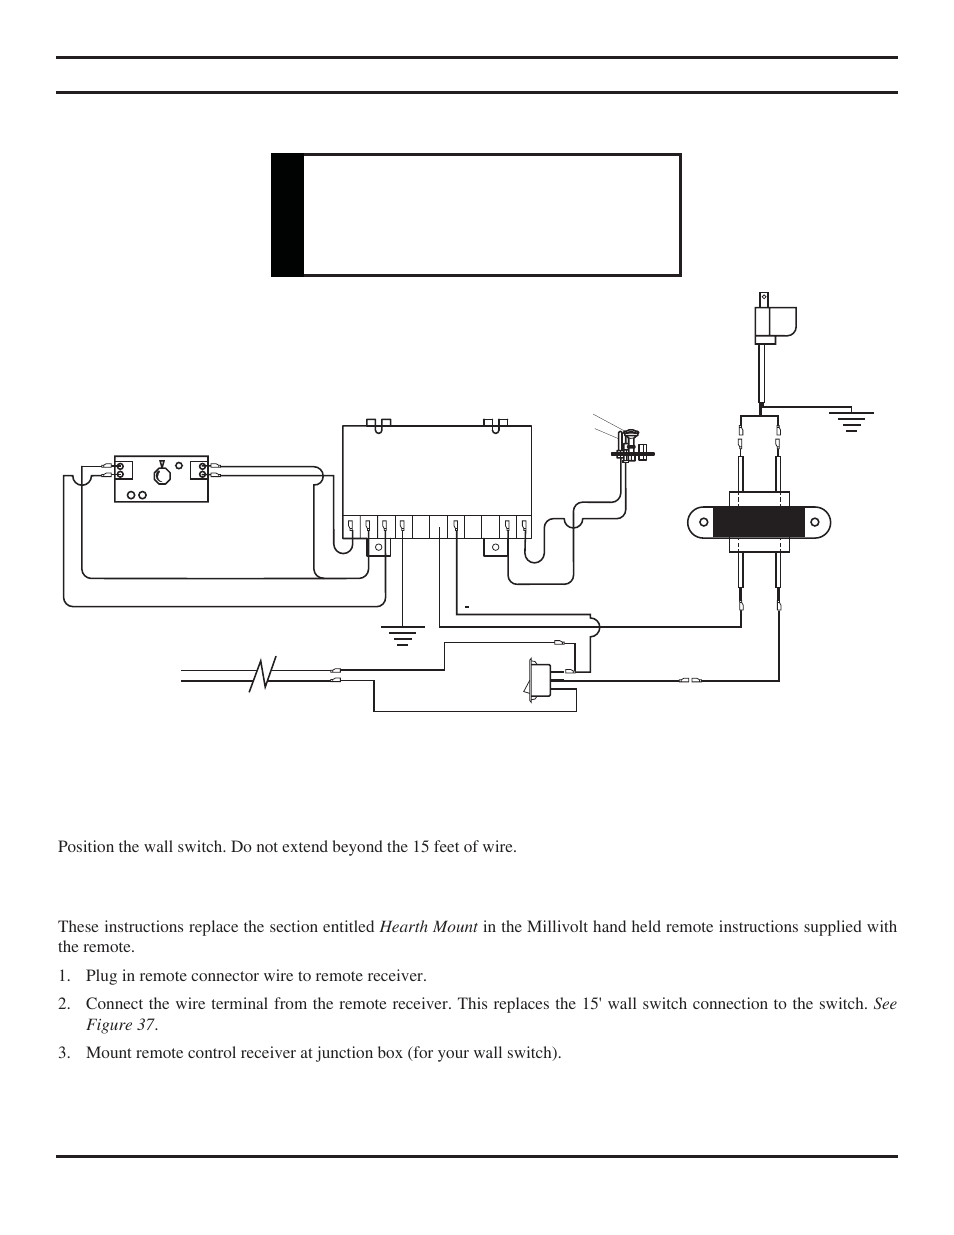 Electrical Installation Warning Remote Wall Switch Monessen Gas Firep Wiring Diagram Hearth Direct Vent Fireplace Bdv500 User Manual Page 30 52